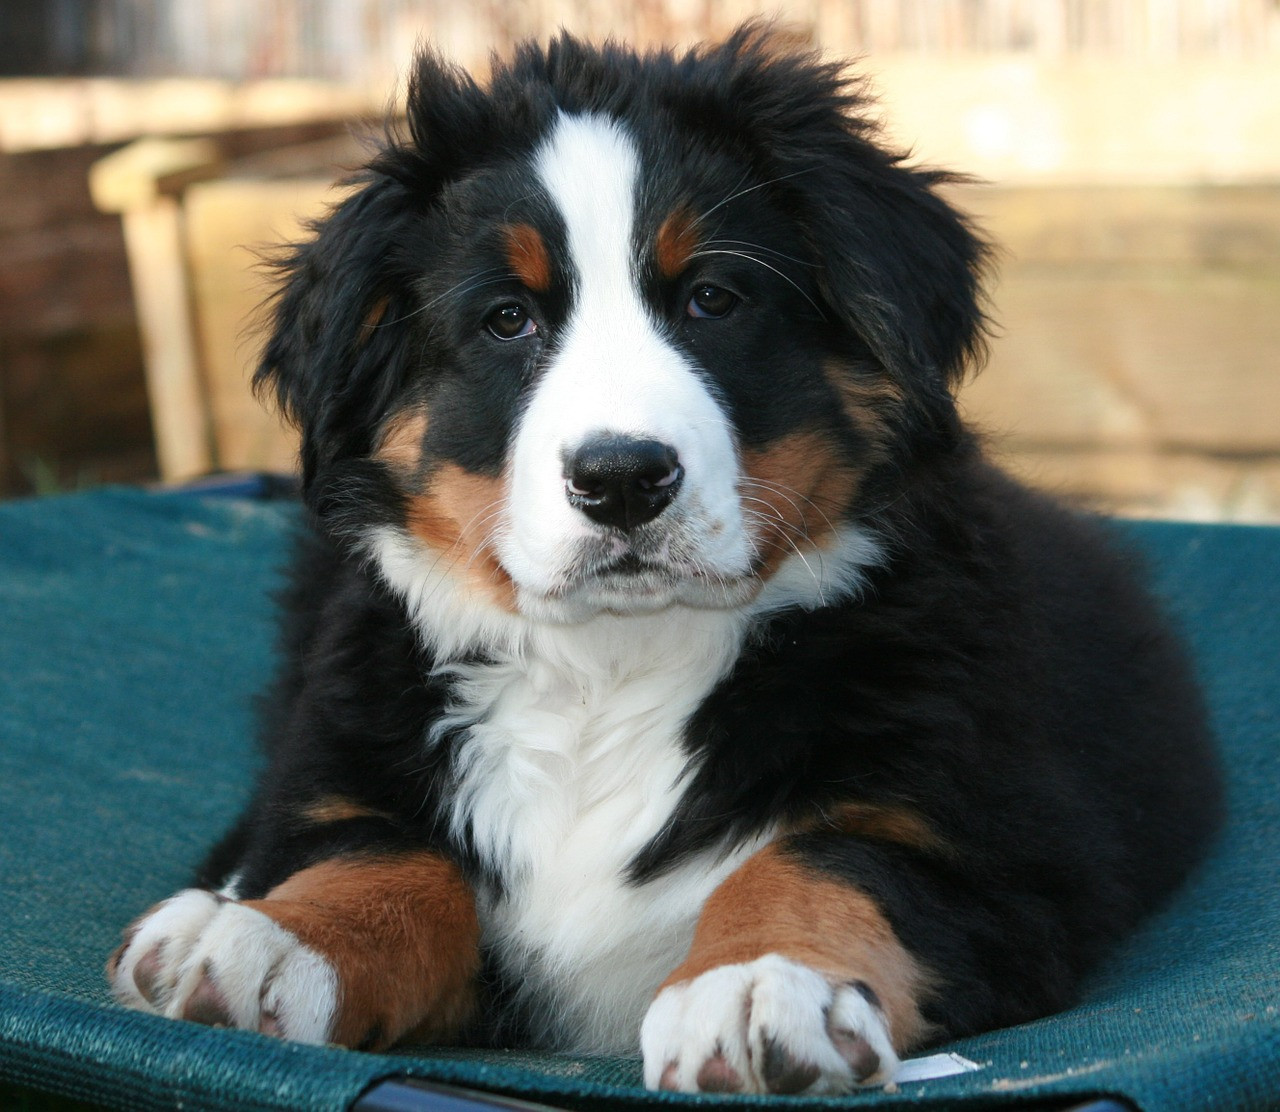 Bernerbabiescom Great Puppies Looking For Great Familes